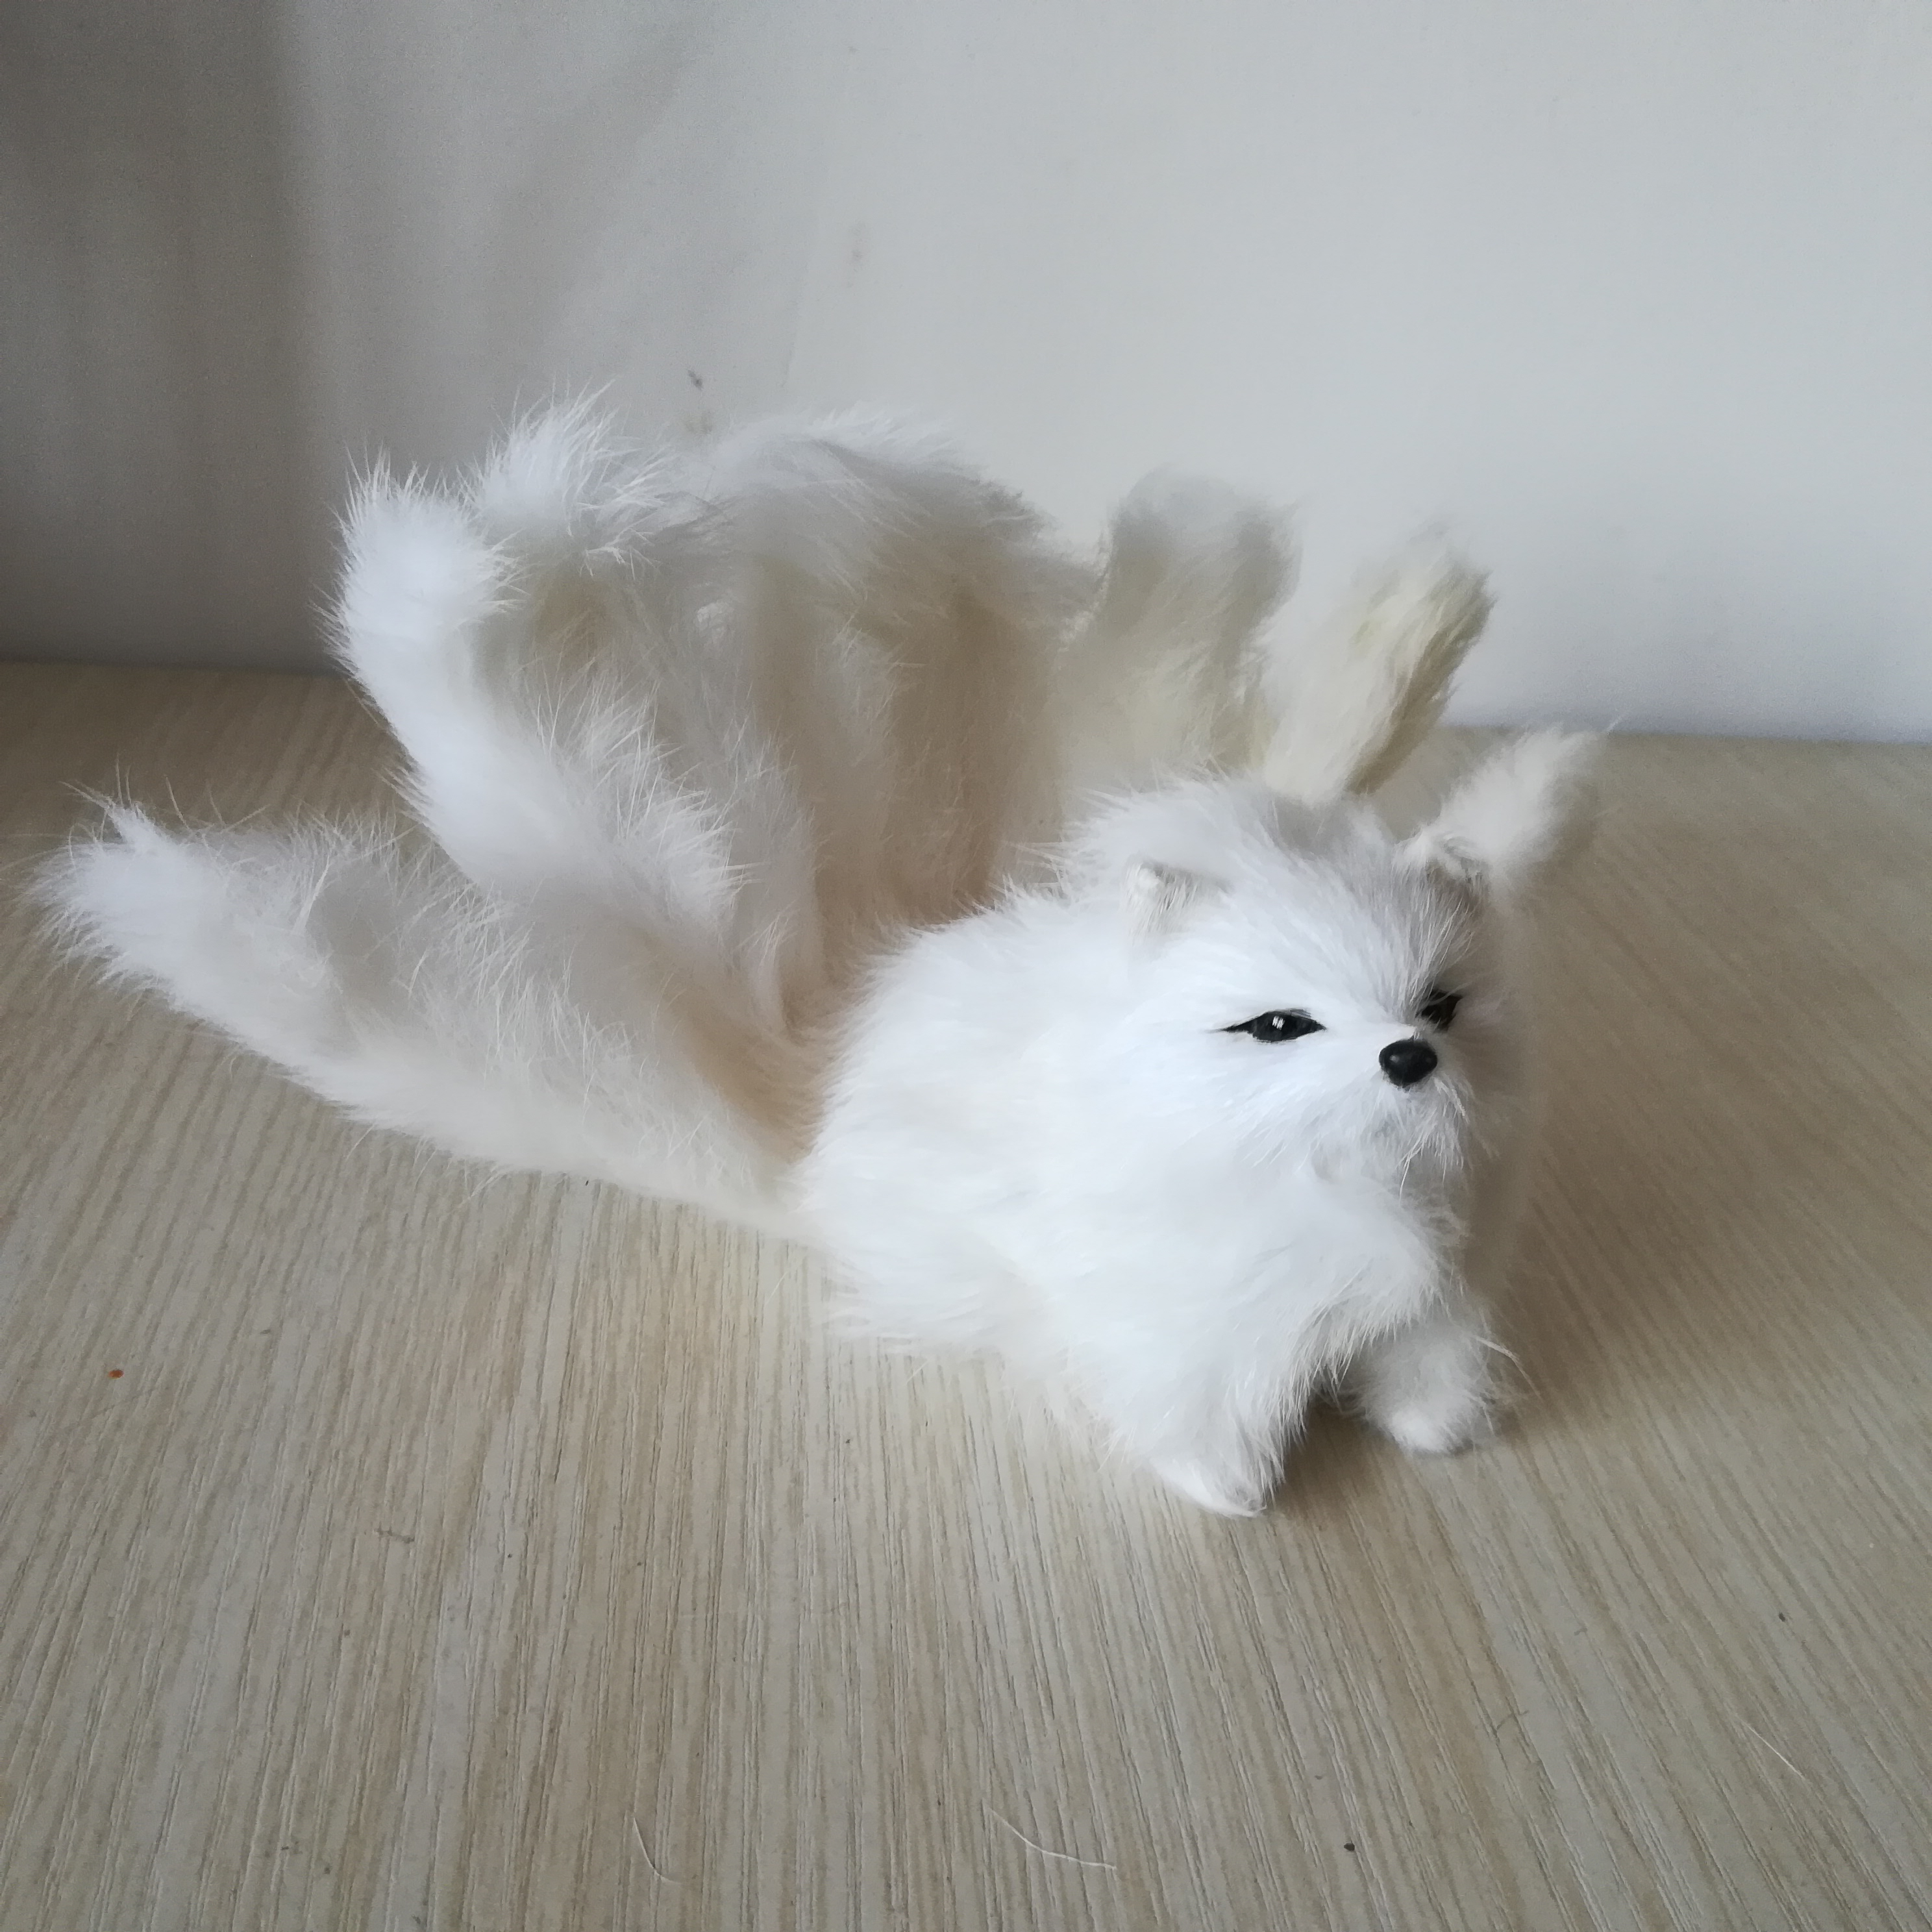 real life toy white fox with nine tails hard model furs fox about 18x7cm craft prop, home decoration gift h1396 image